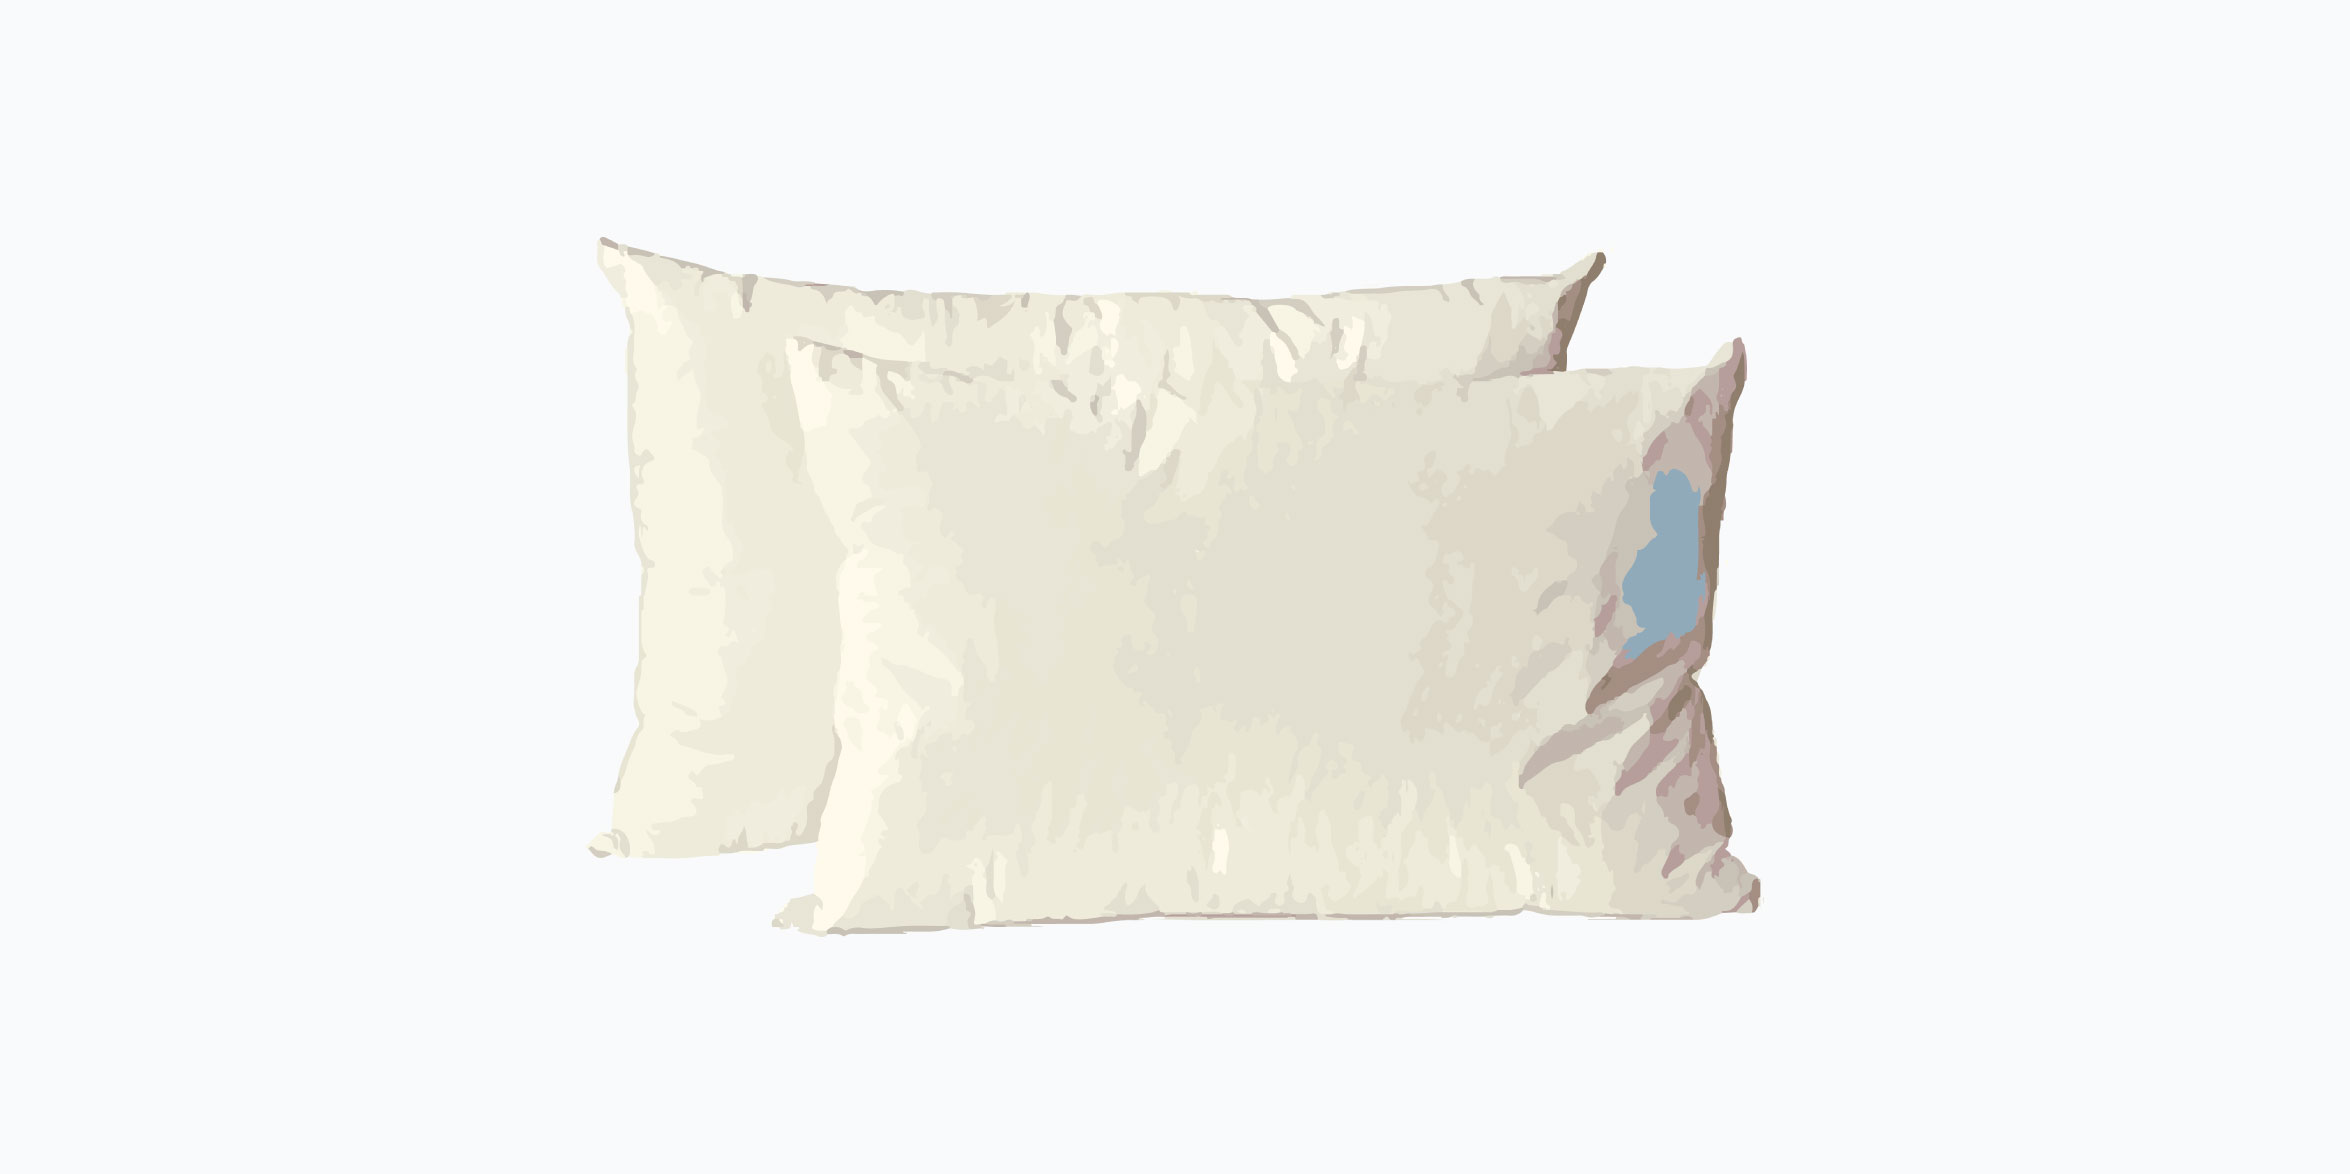 Premier Down-Like Personal Choice Pillows